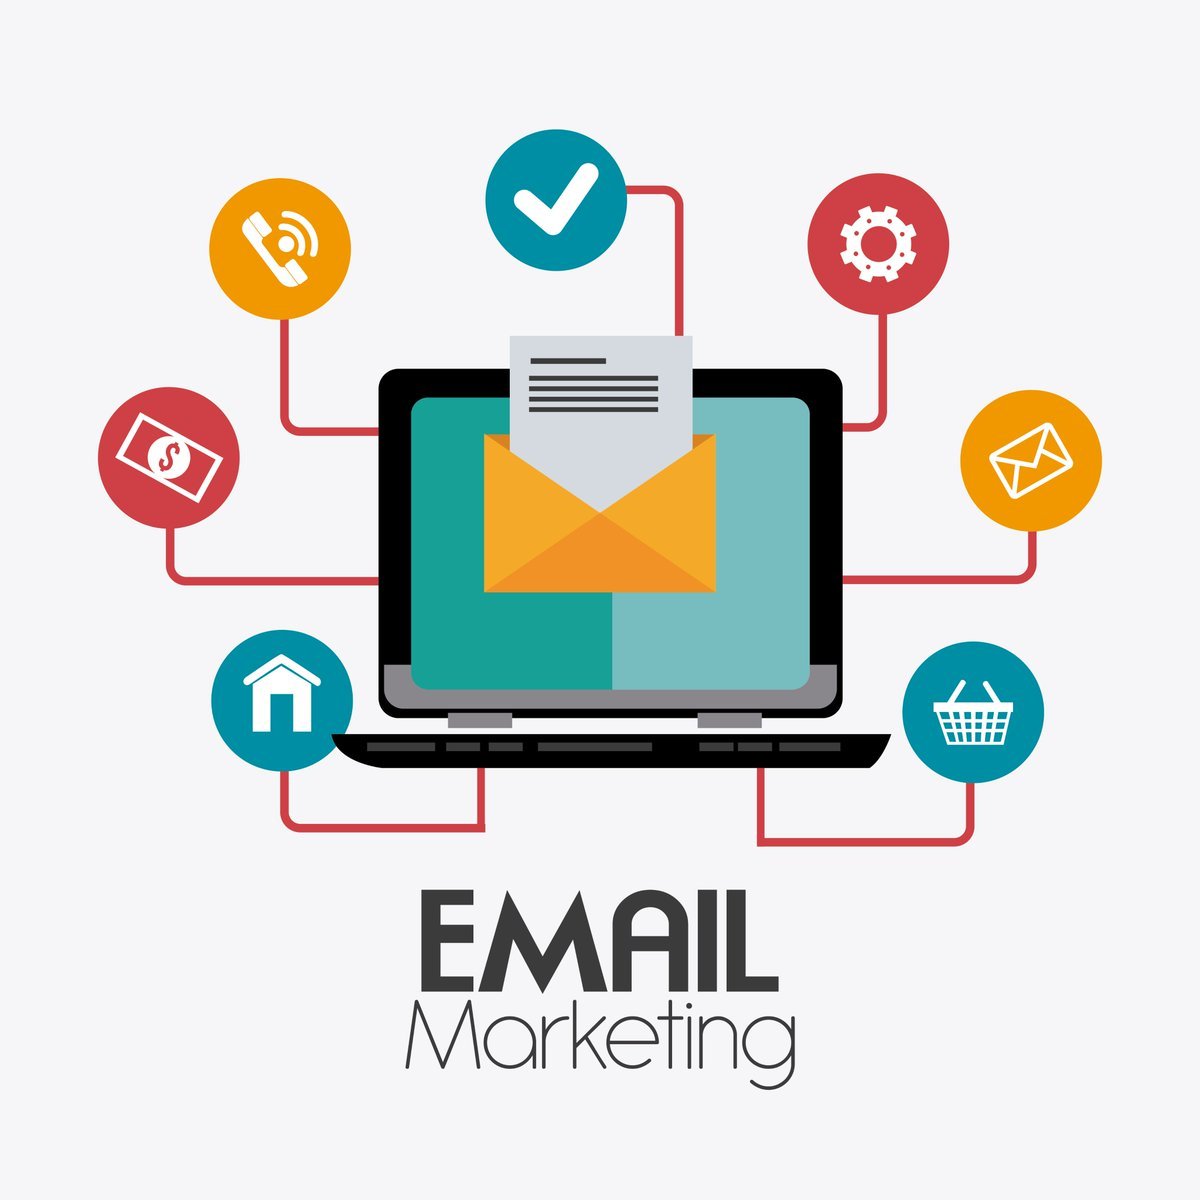 email-marketing-dicas-mkt-drops-digital-1